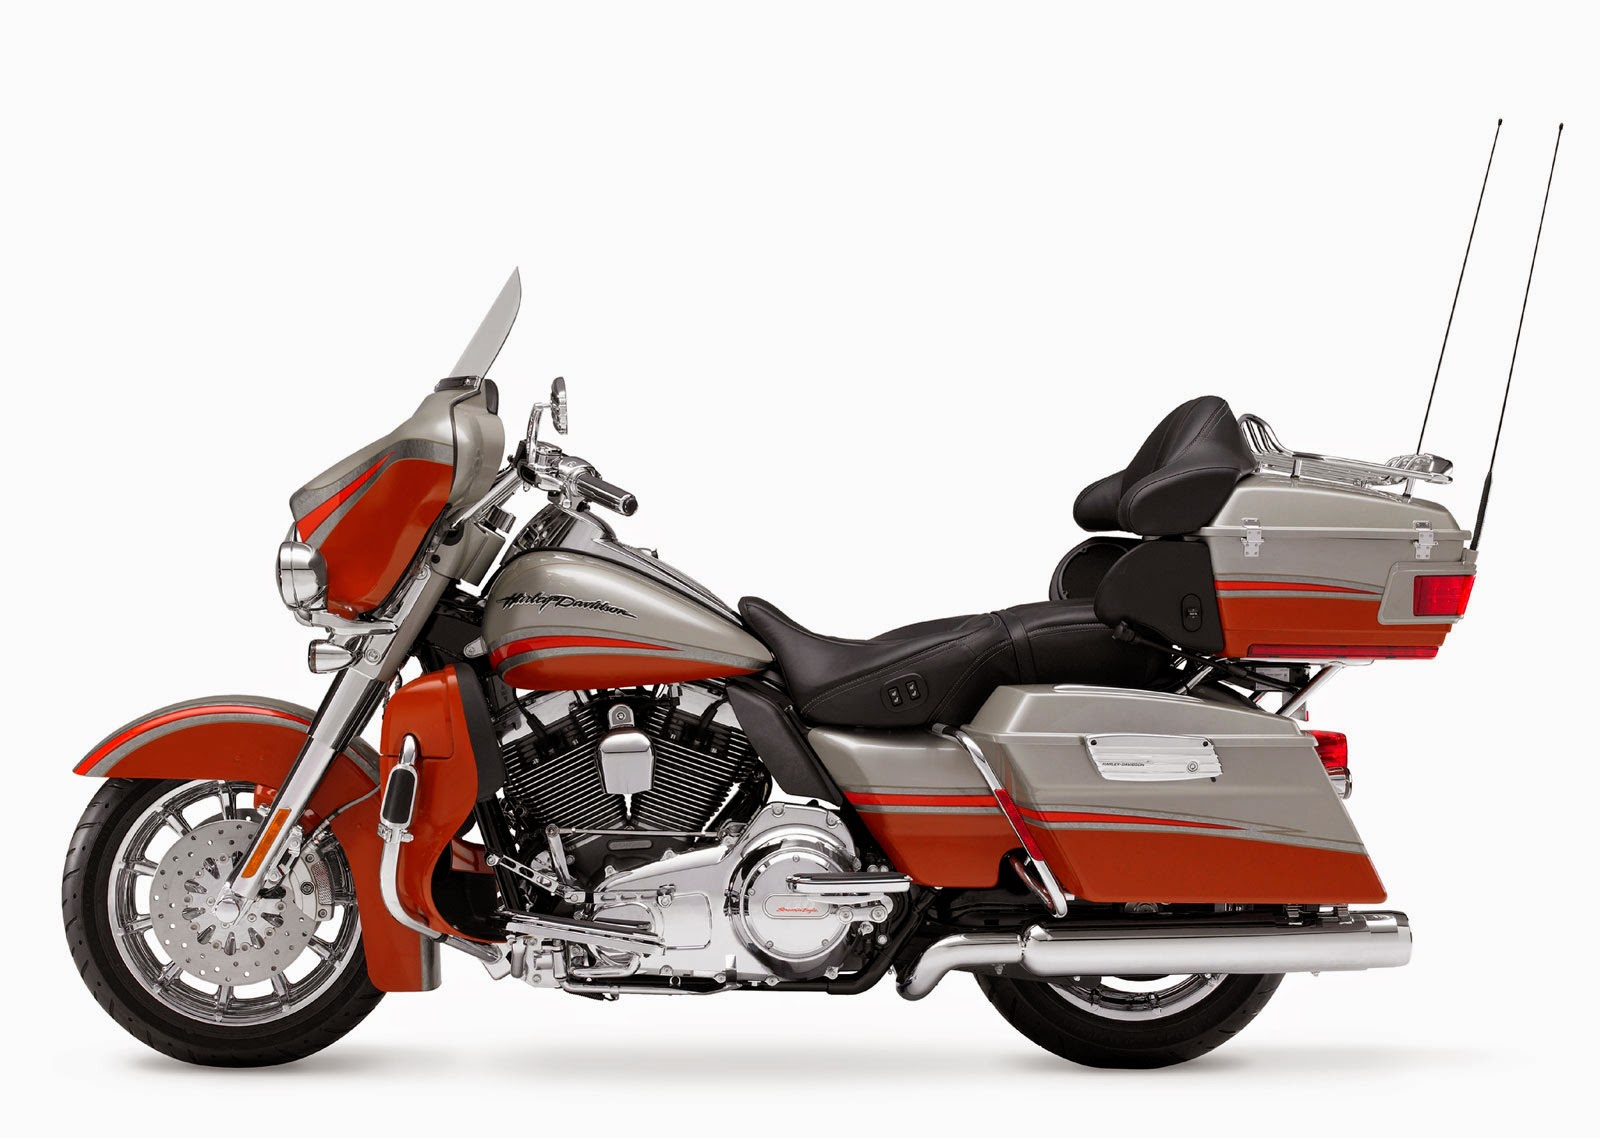 harley-davidson cvo ultra classic electra glide flhtcuse4 owner's